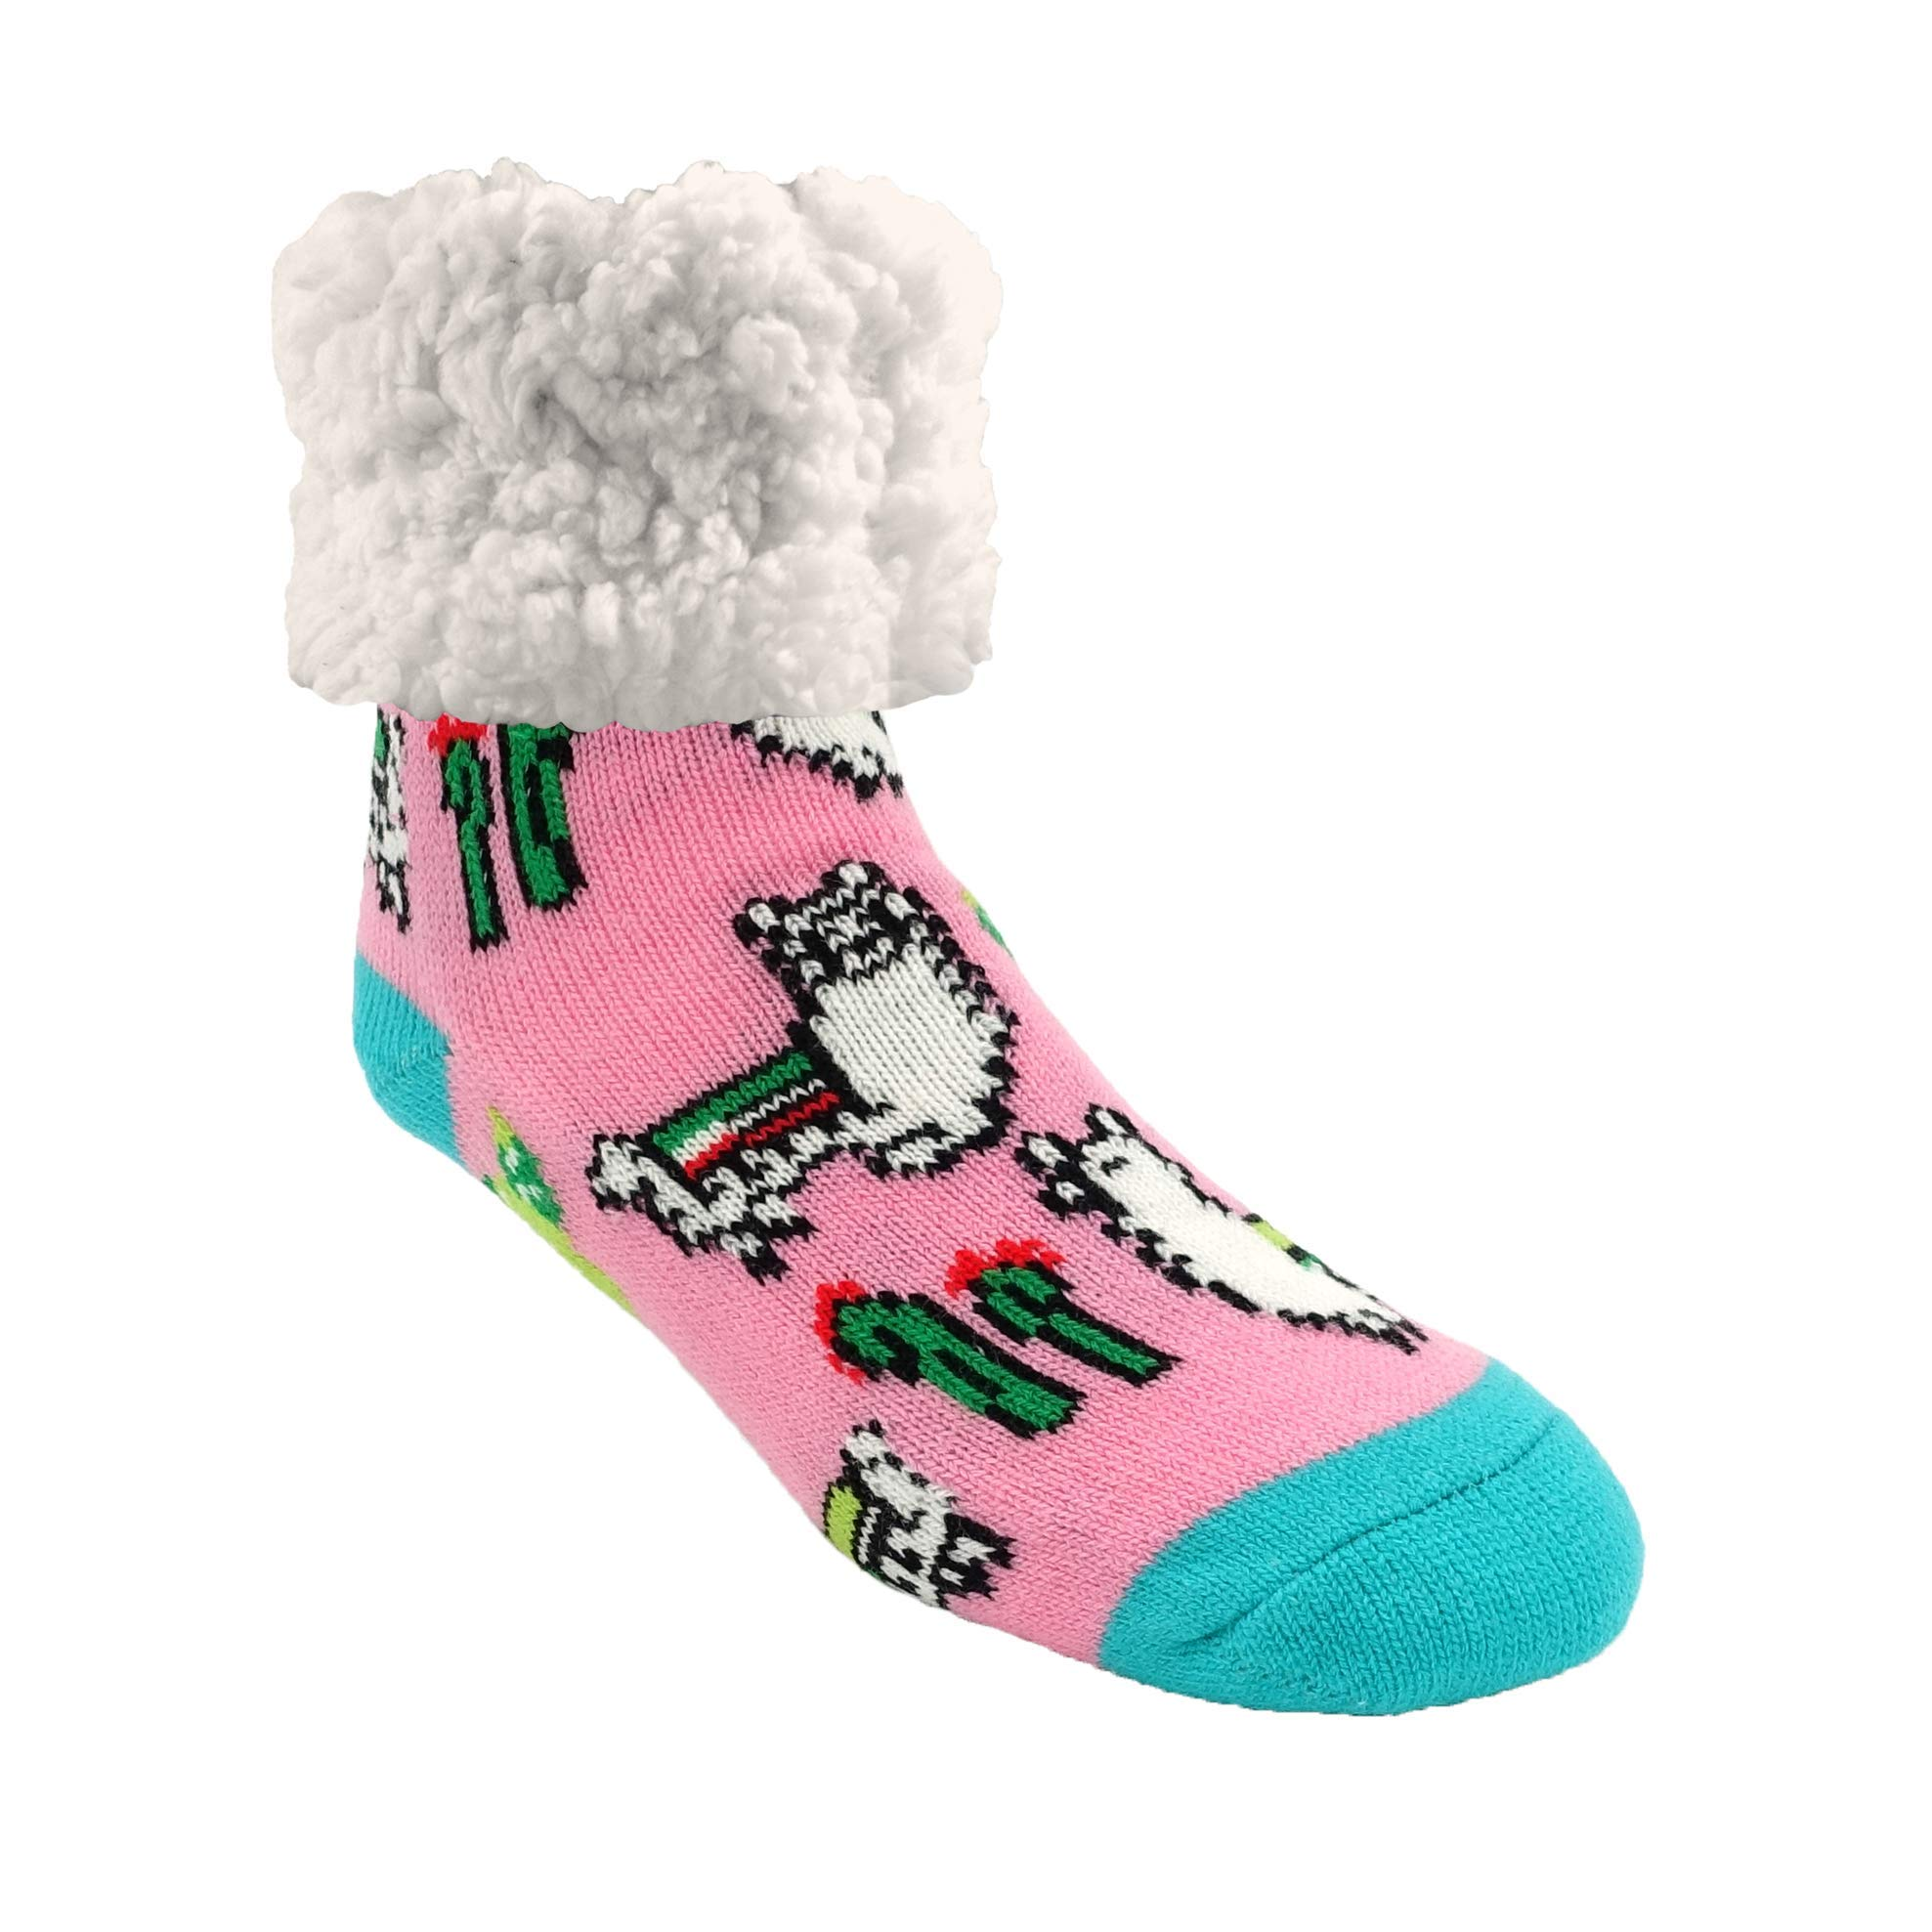 Pudus Cozy Winter Slipper Socks Women /& Men w Non-Slip Grippers Faux Fur Sherpa